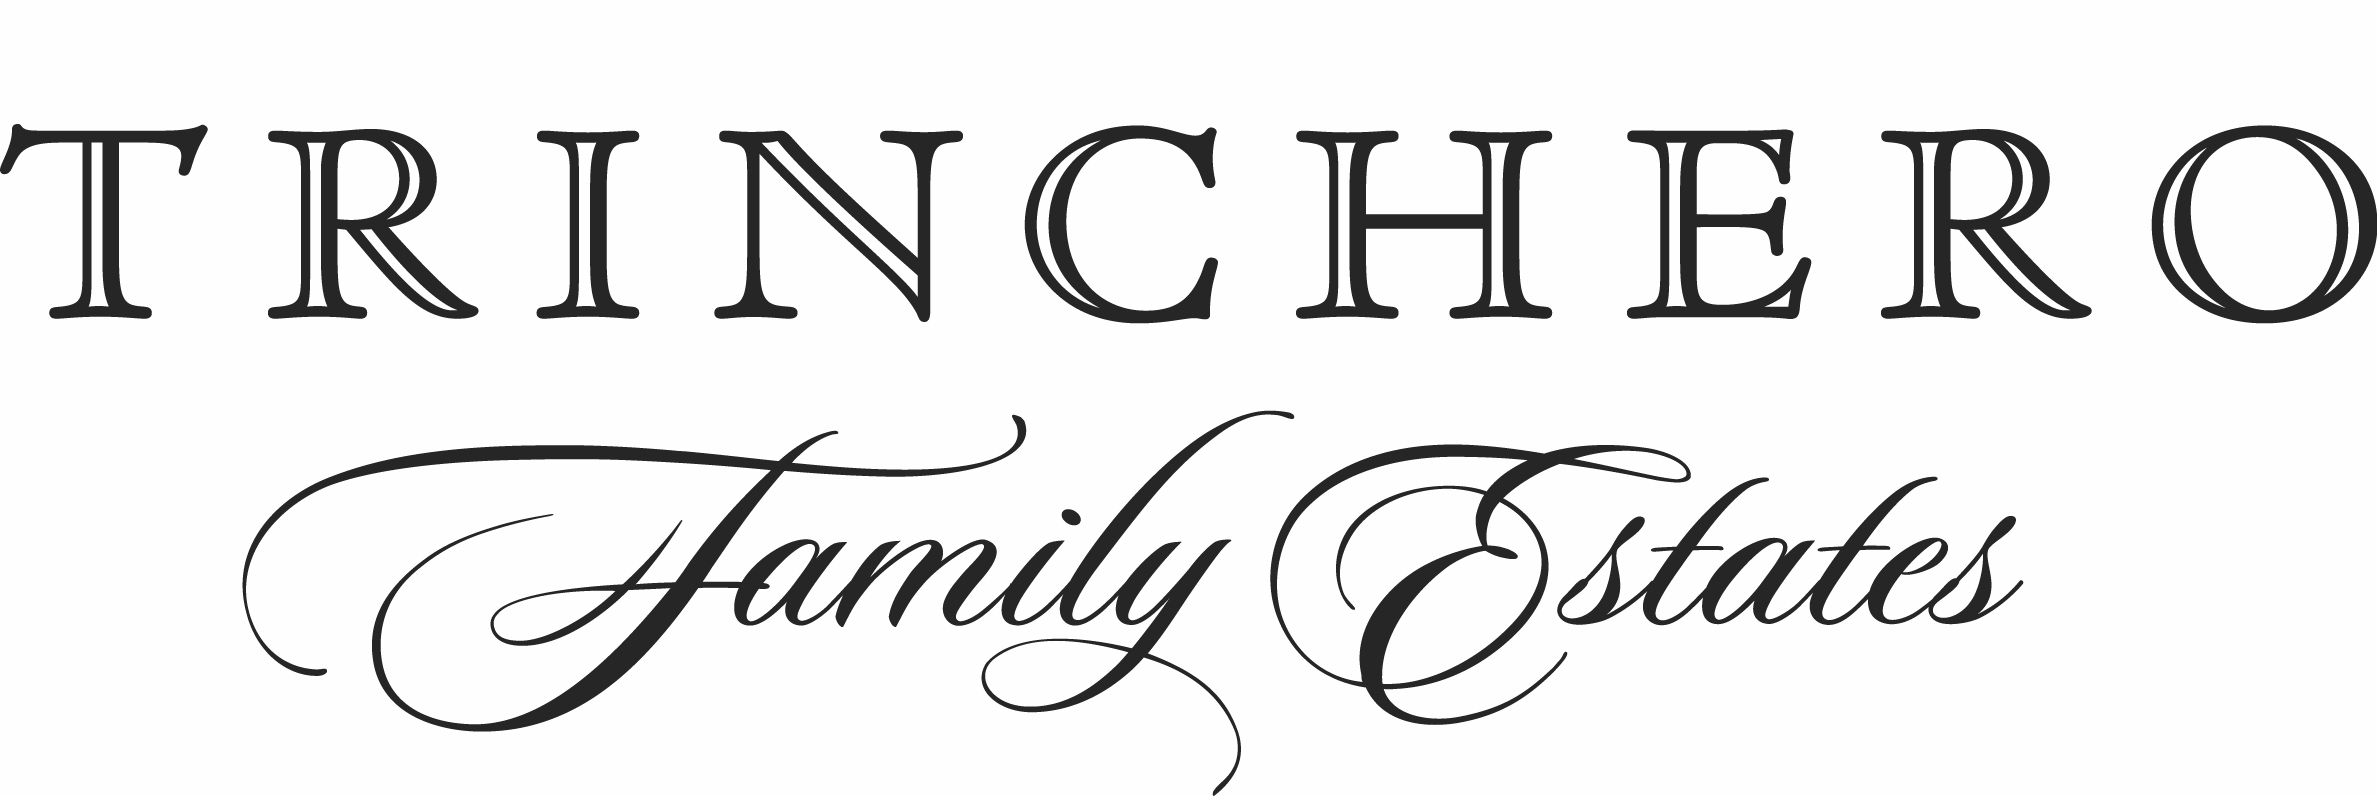 Trinchero-Family-Estates-High-Res-Logo 2377x796